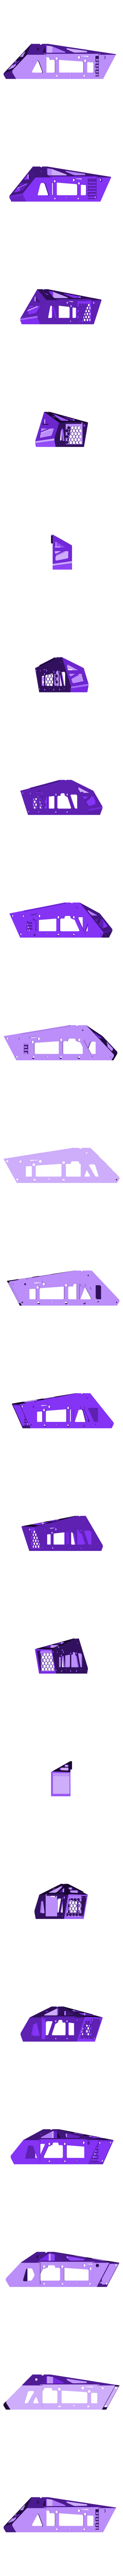 Right_Replacement_Battery_Boxes.stl Download STL file Chassis 6s Replacement Battery Boxes • 3D print object, MaDdIaBlO